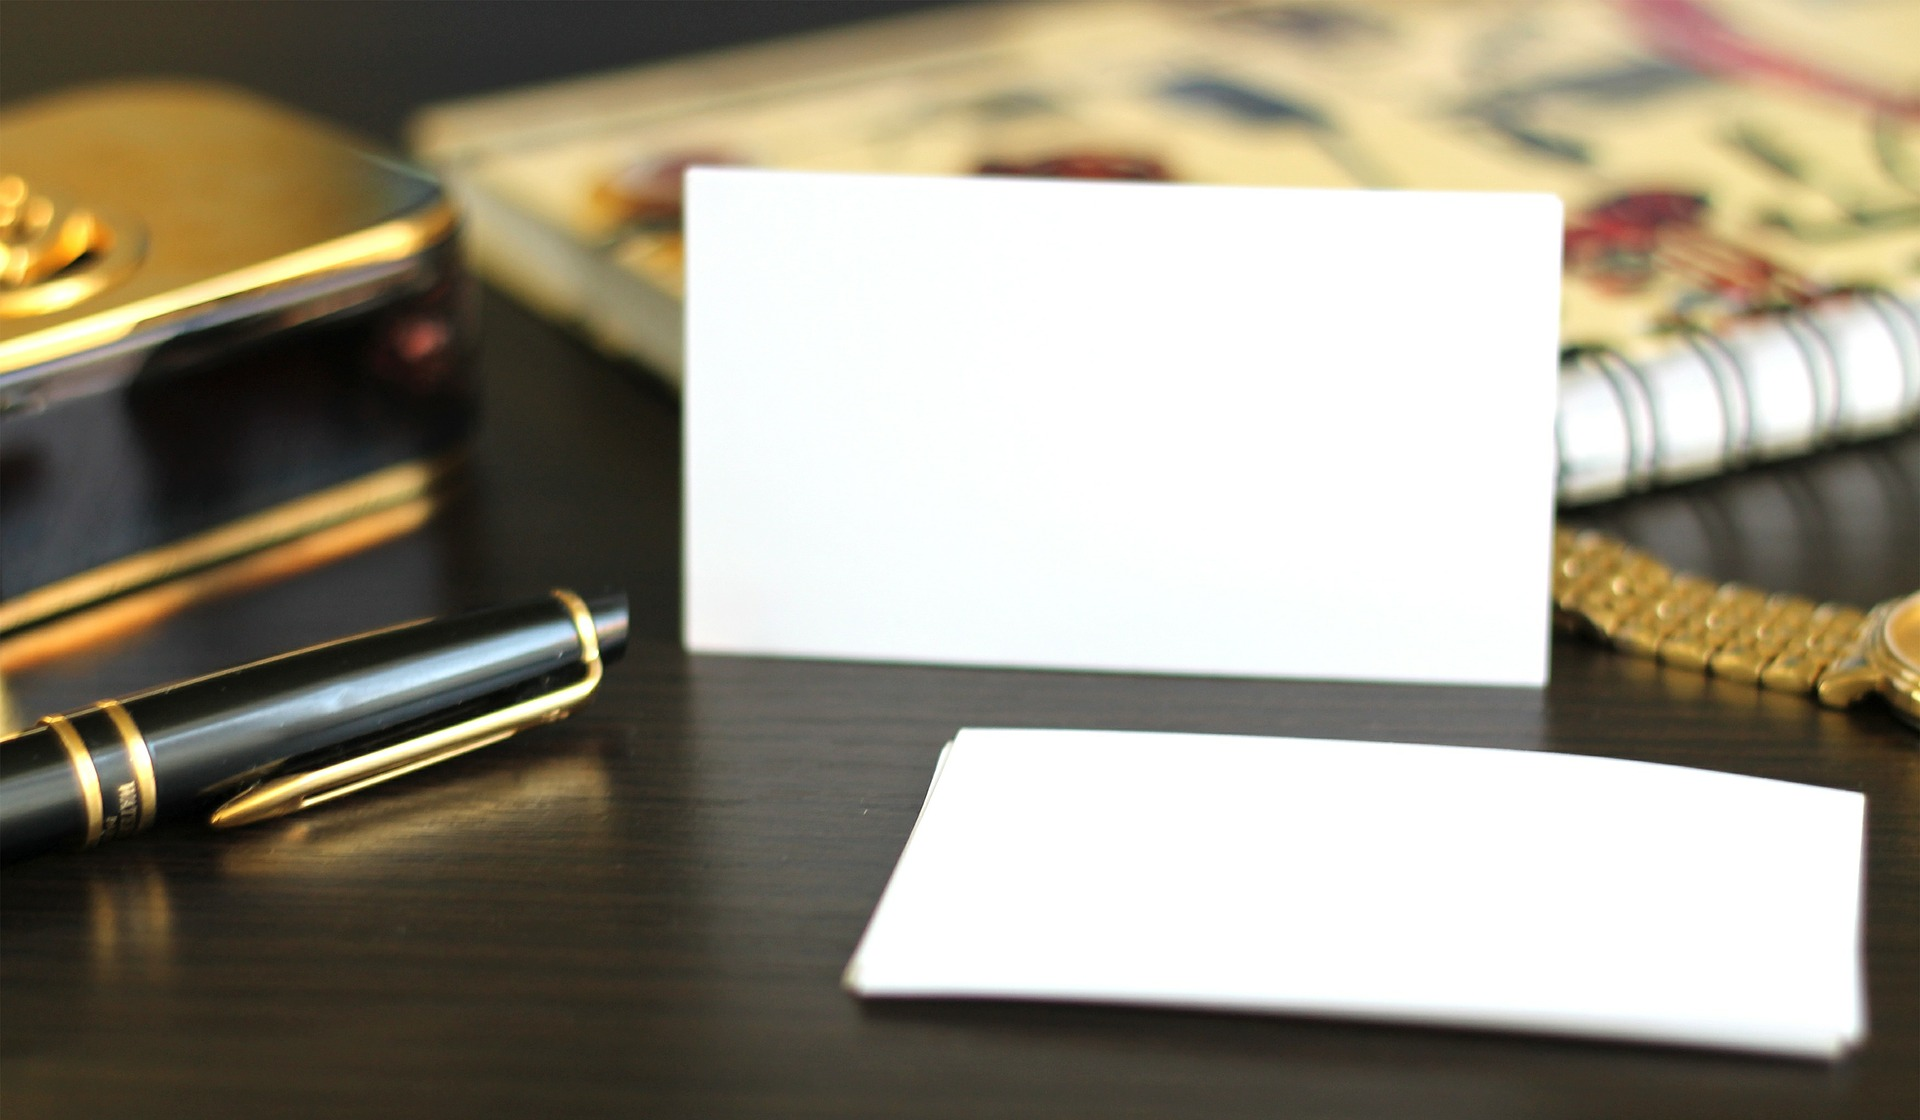 an office desk with a business card